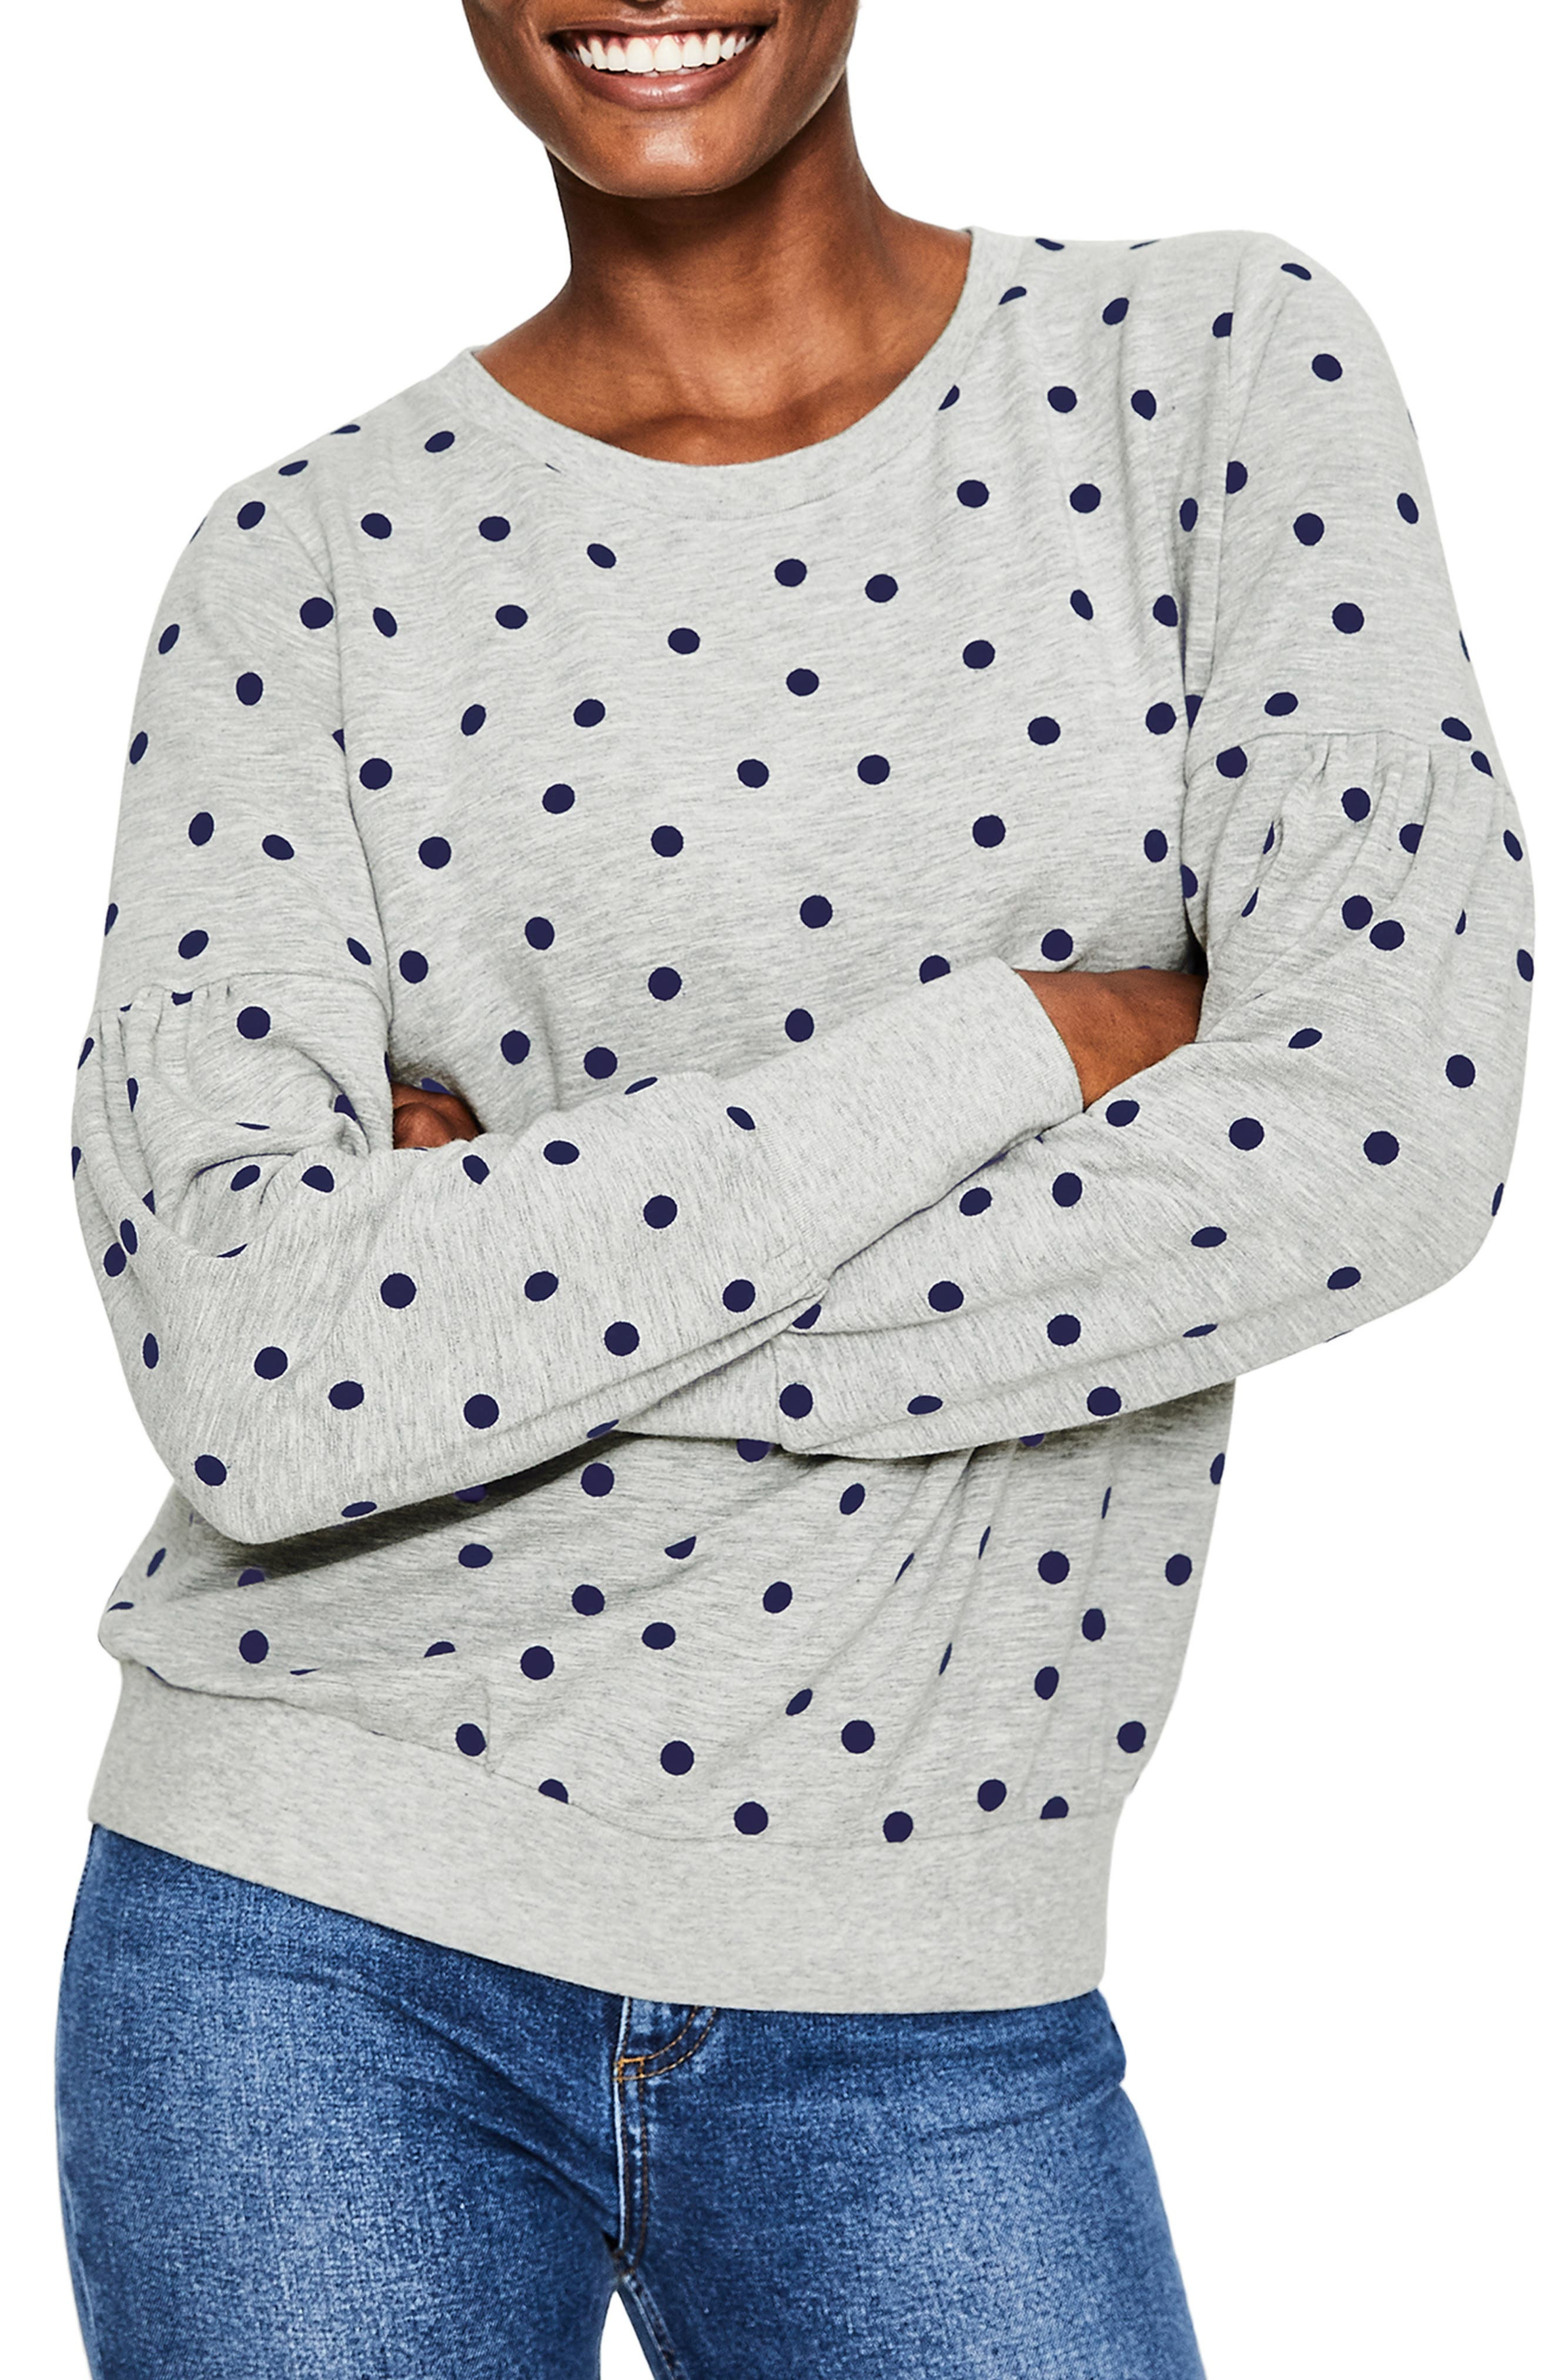 Renee Sweatshirt,                             Main thumbnail 1, color,                             GREY MARL FLOCKED SPOT